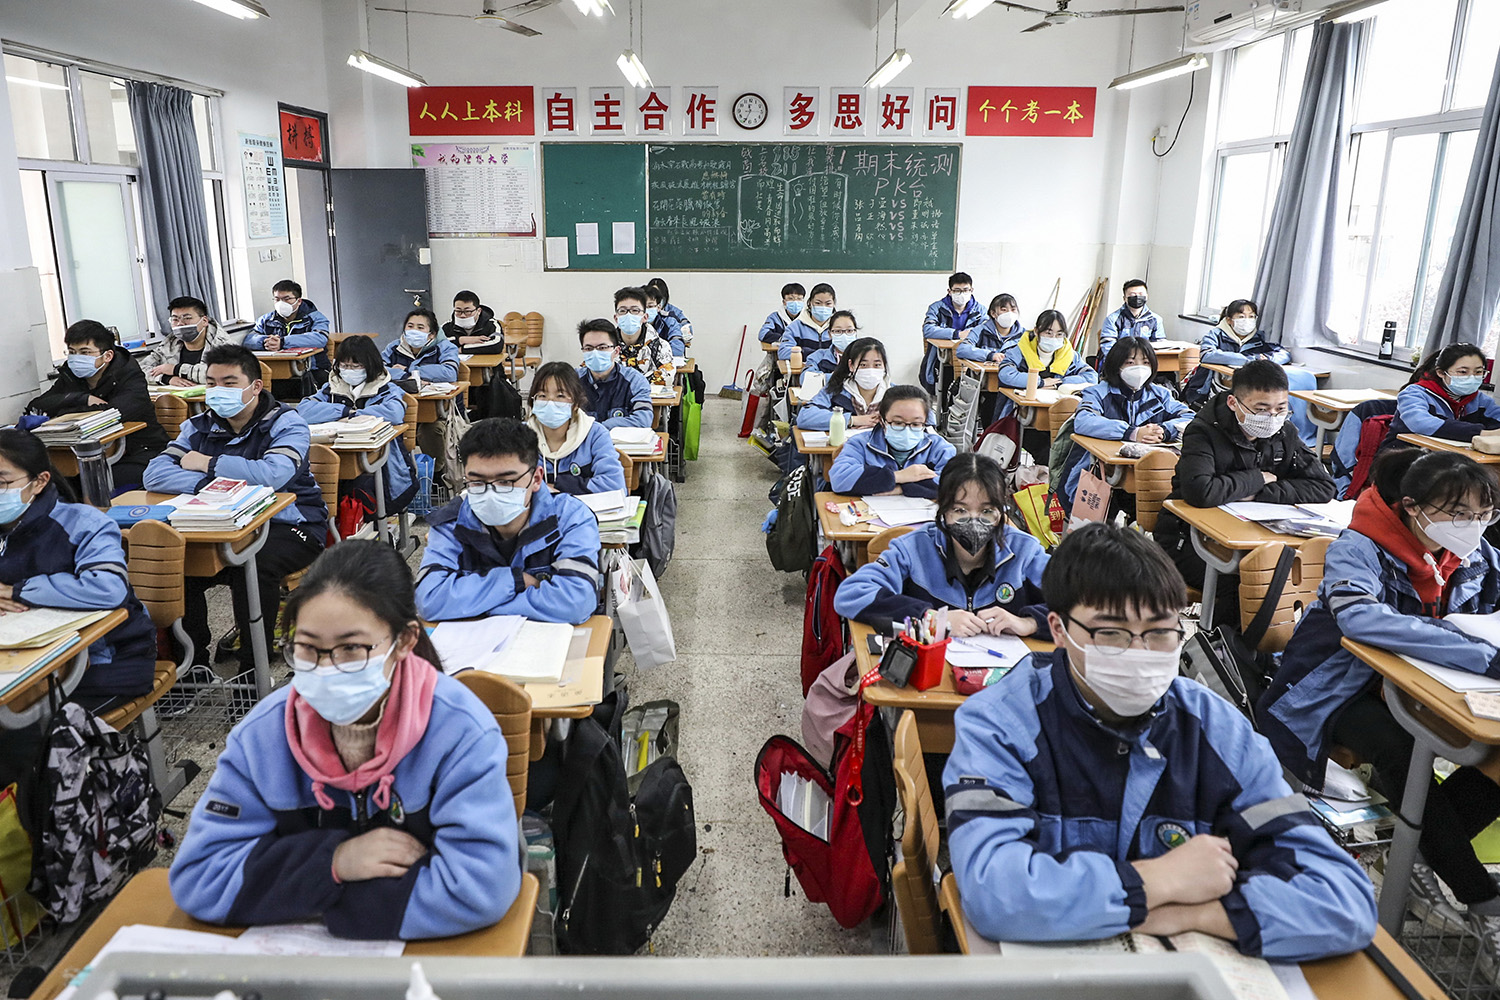 Students return to the classroom in Huai'an, China, on March 30 following the coronavirus outbreak. STR/AFP via Getty Images